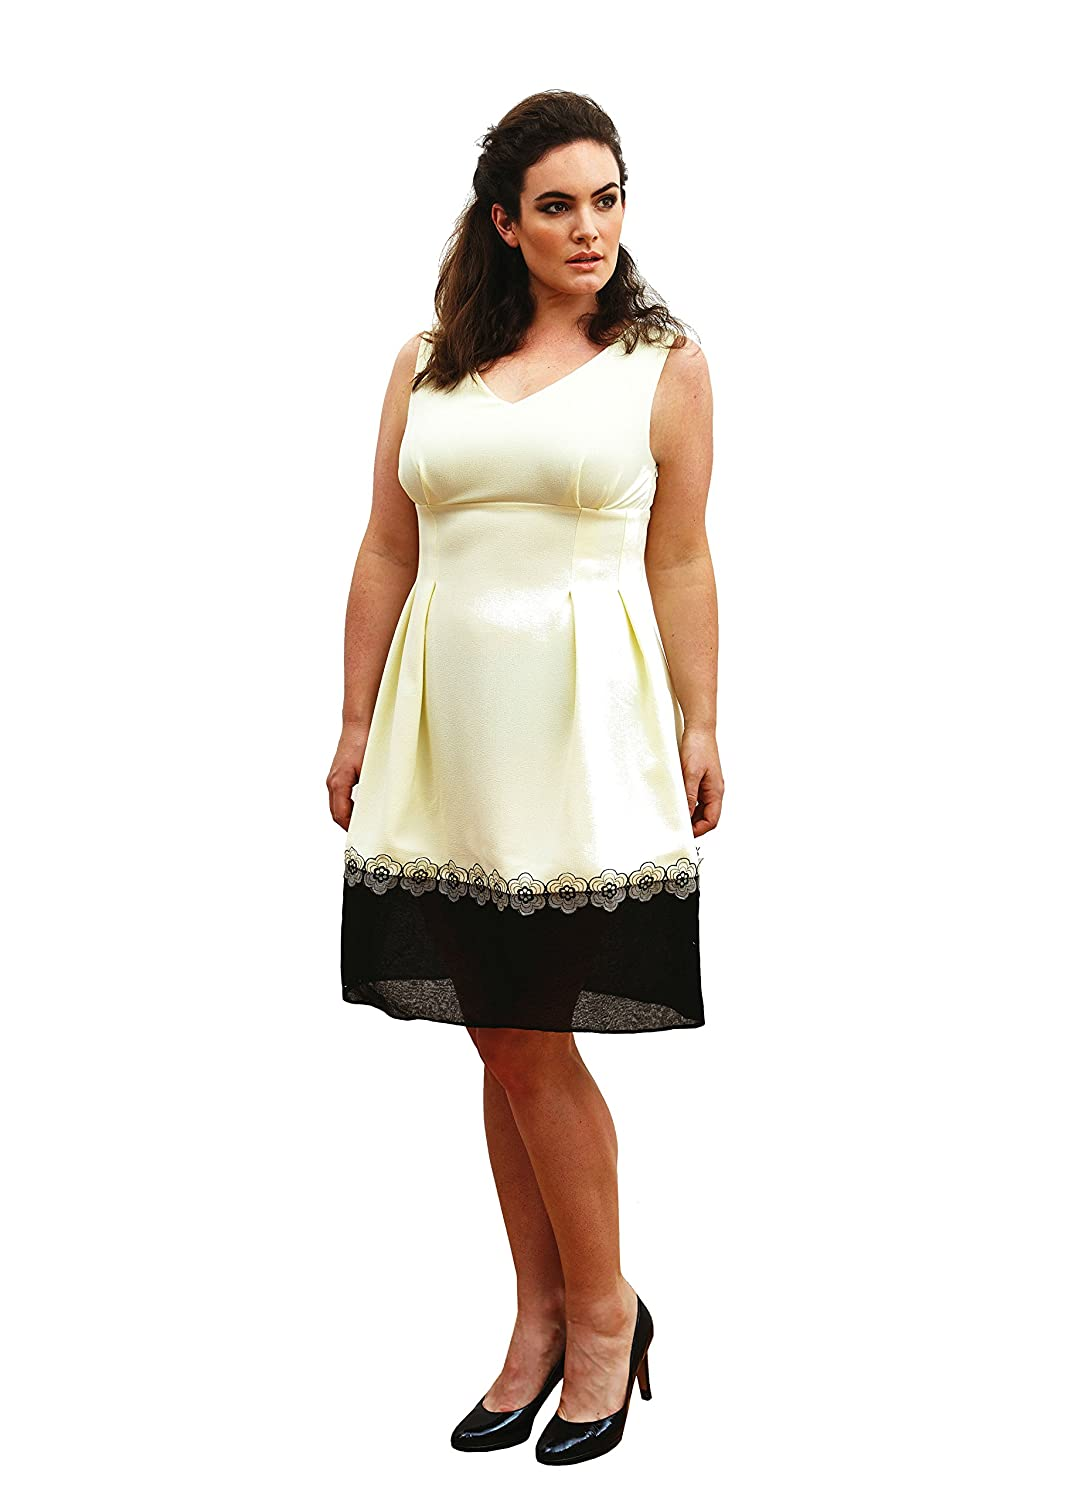 Plus size cocktail dress ?Amber? (Sizes 16-26). Yellow Midi Contrast Organdy Hem Band Dress. Made in the UK by Dea London - UK's manufacturer of Designer plus size dresses.